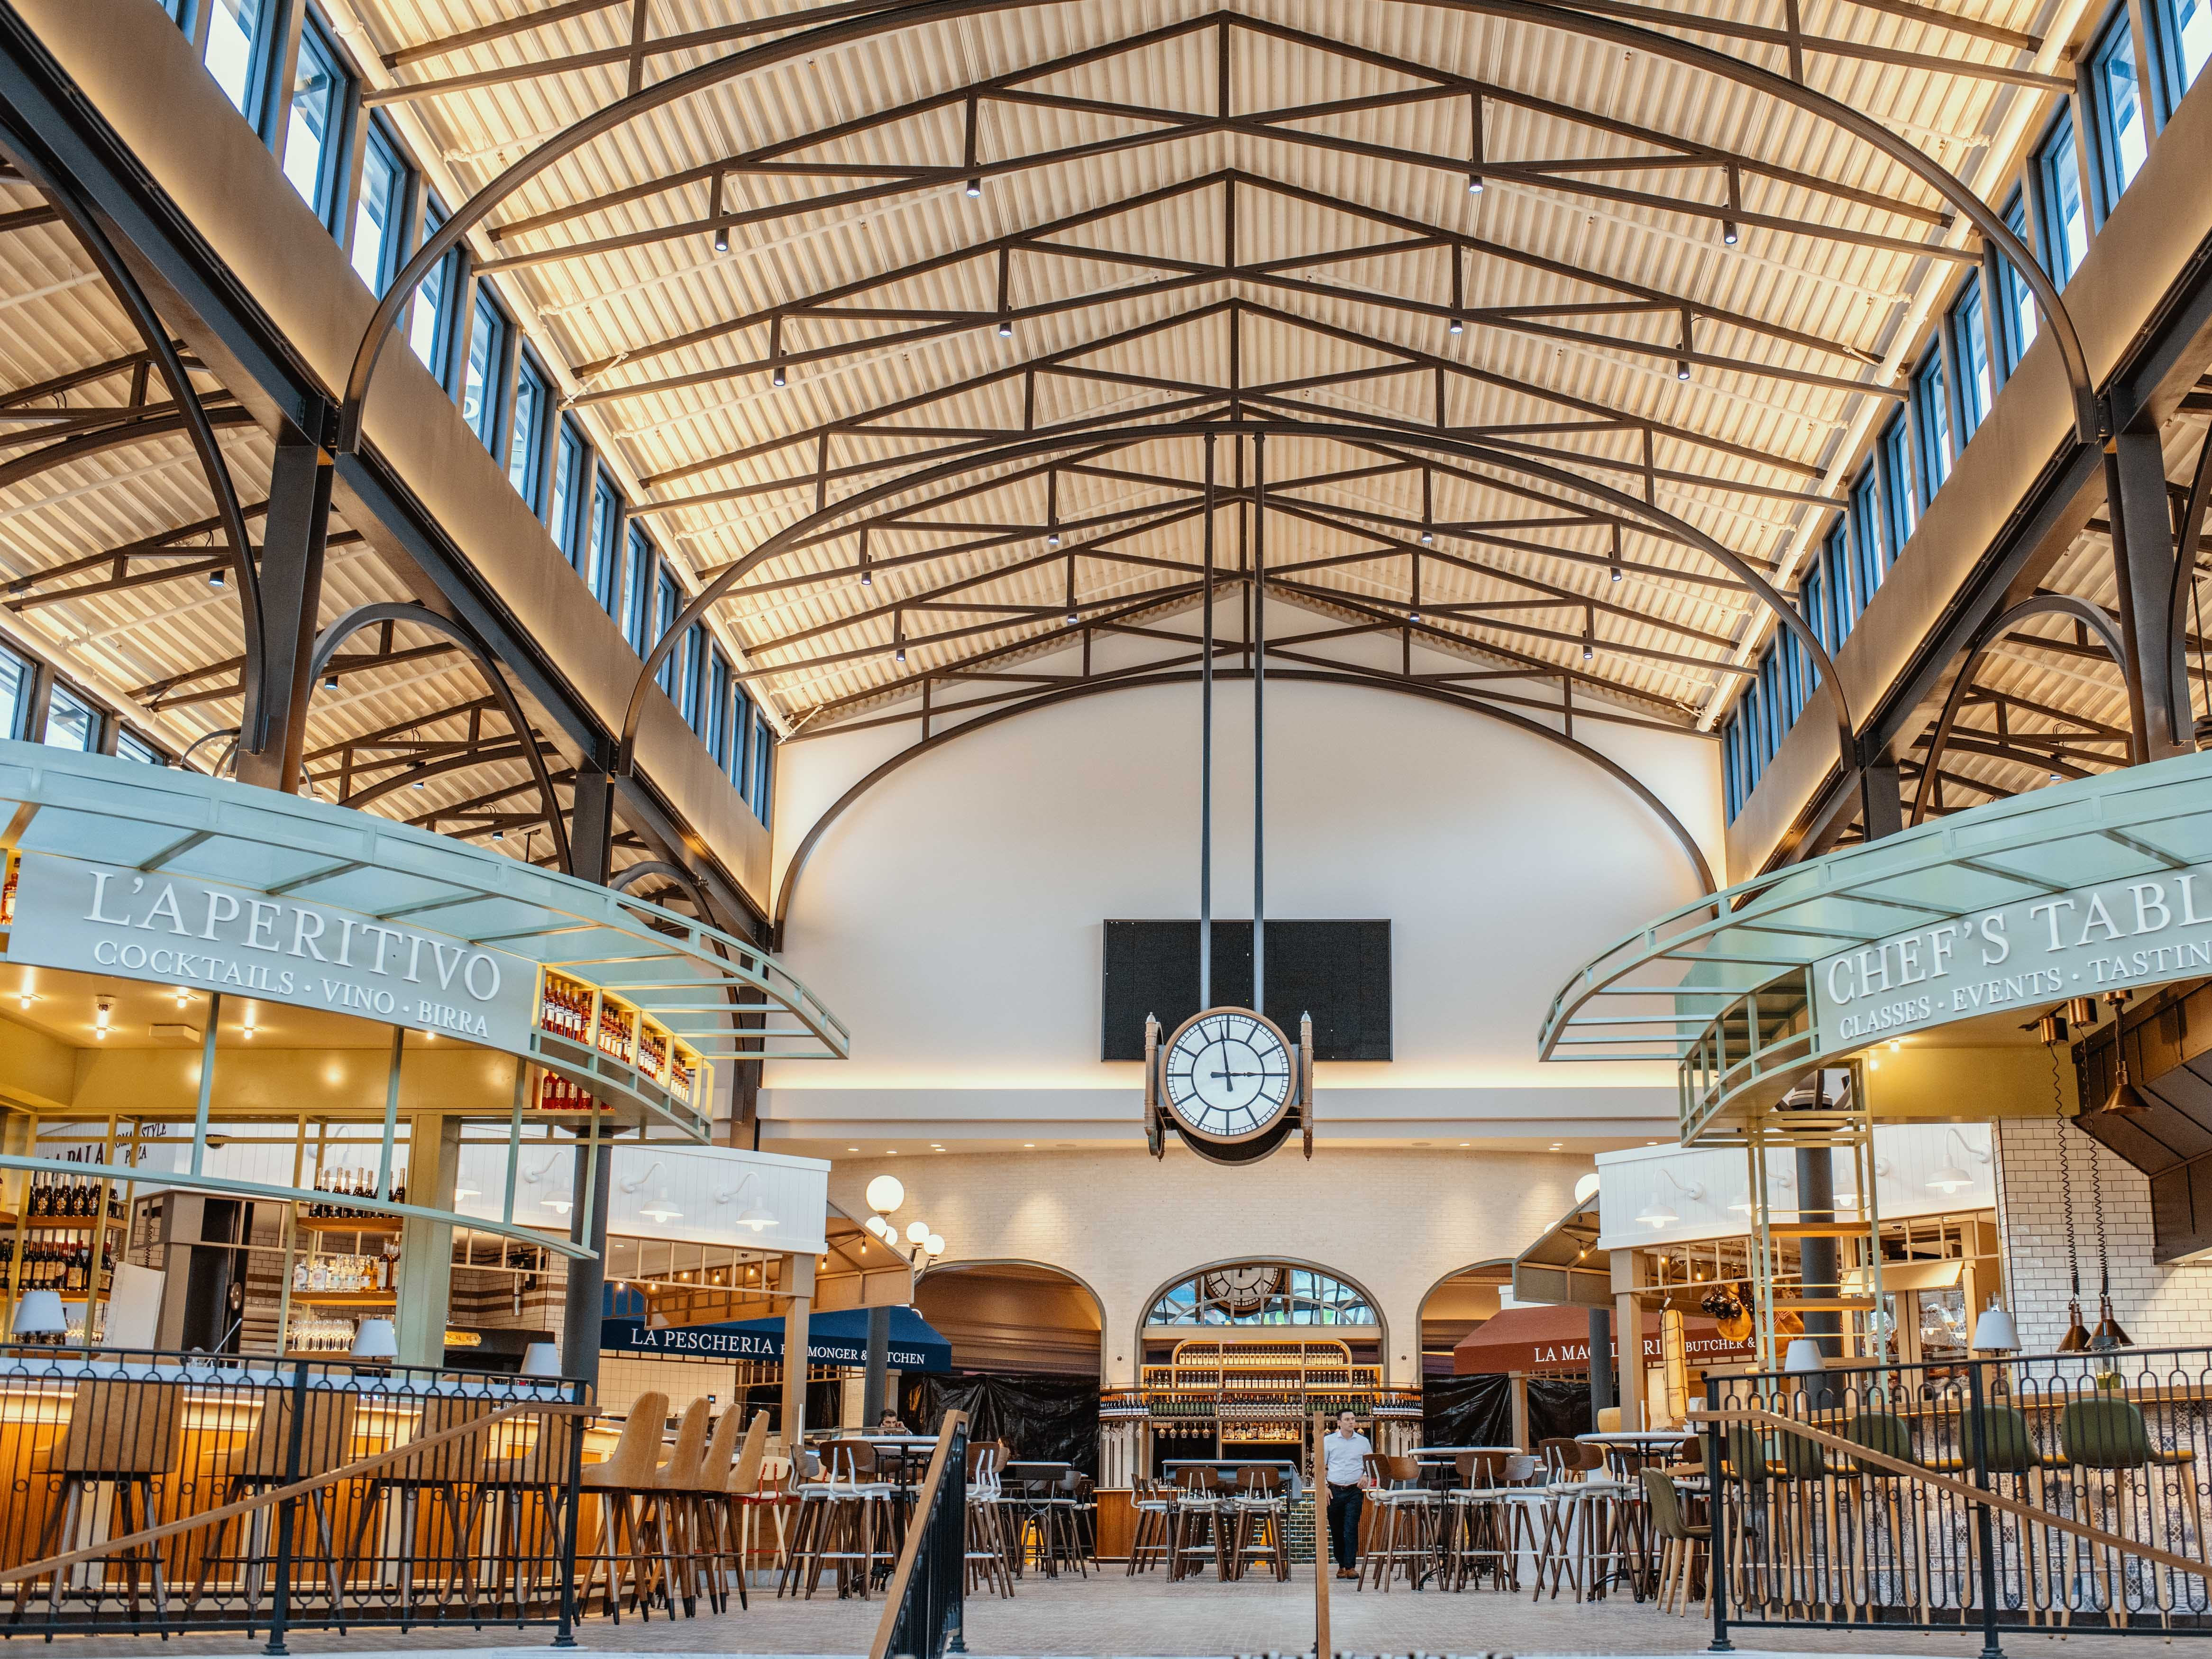 EATALY LAS VEGAS in the Park MGM. Eataly marketplace, sibling to Eatalys around the world, offers more than a dozen Italian shops and restaurants across 40,000 square feet.